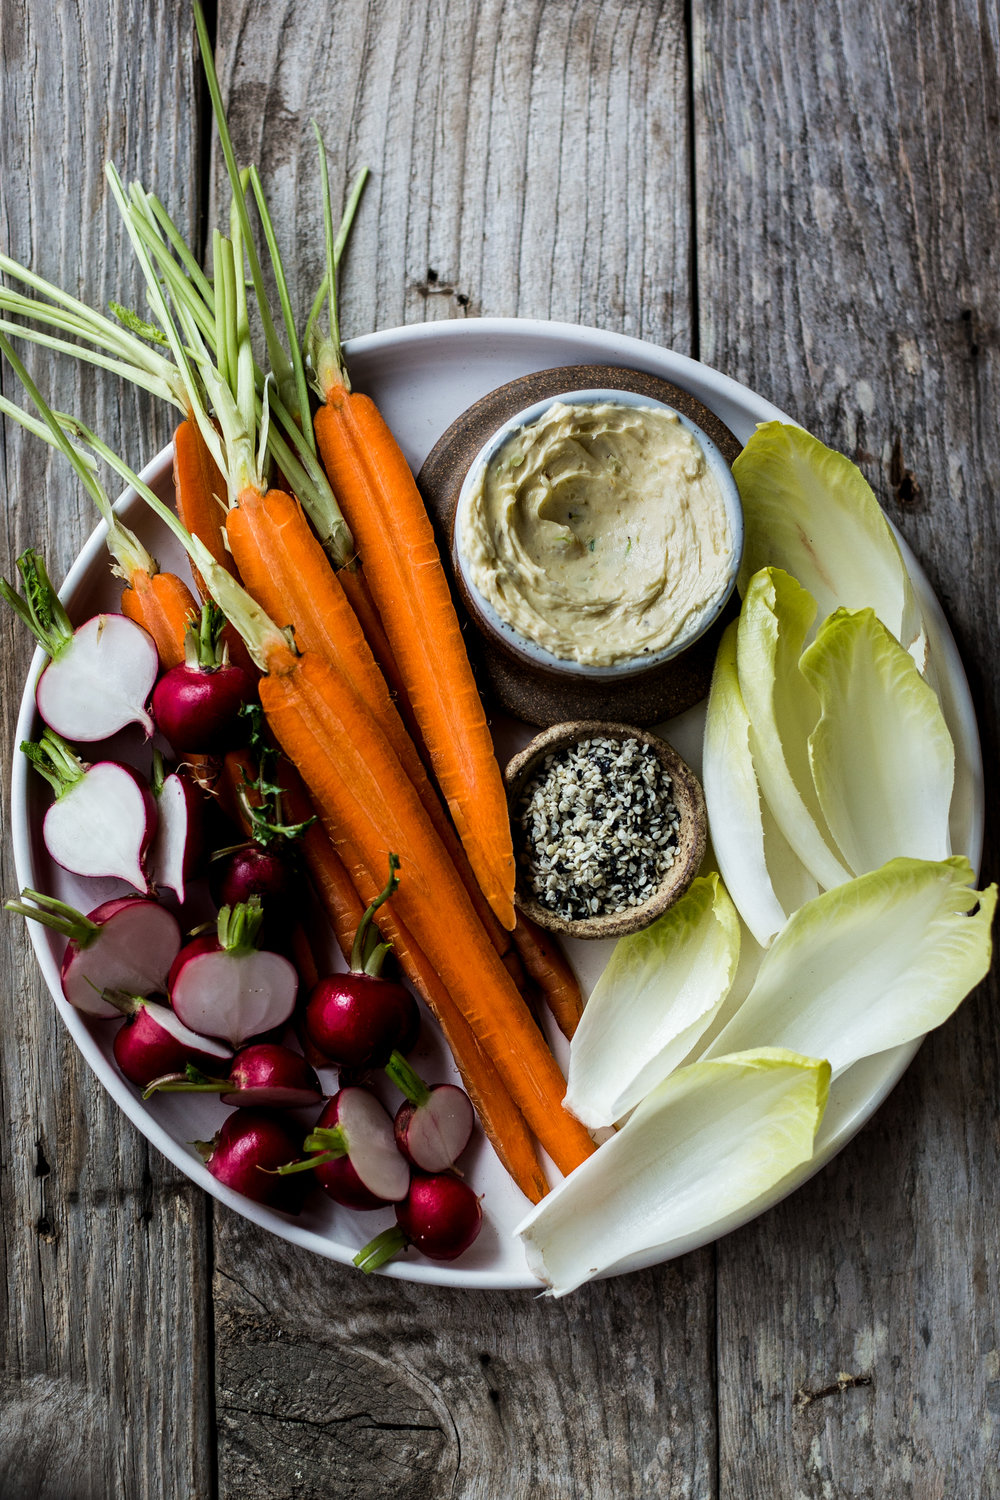 Scallion Miso Butter with Veggies